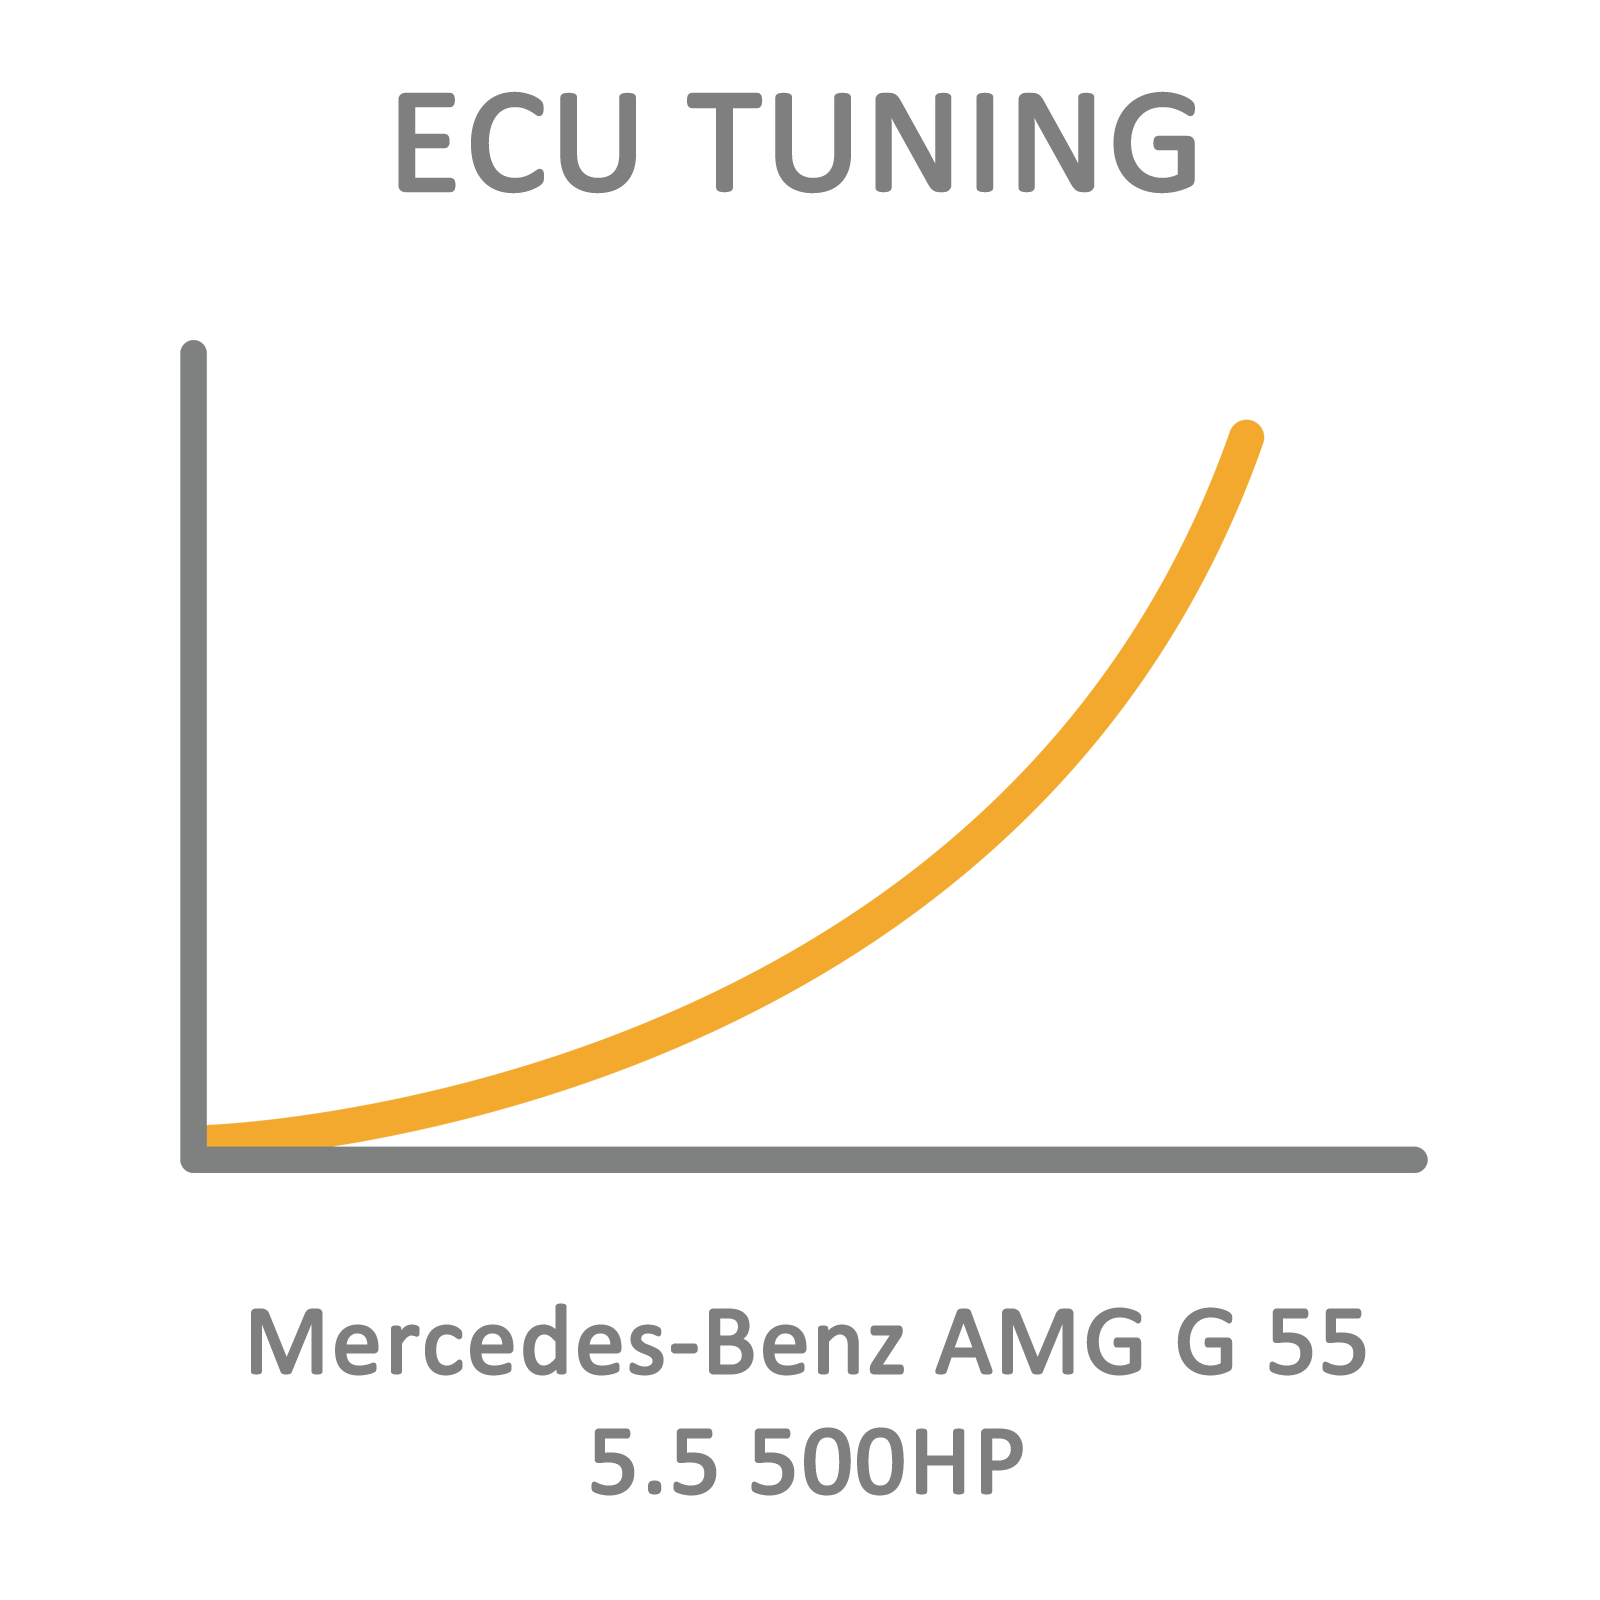 Mercedes-Benz AMG G 55 5.5 500HP ECU Tuning Remapping